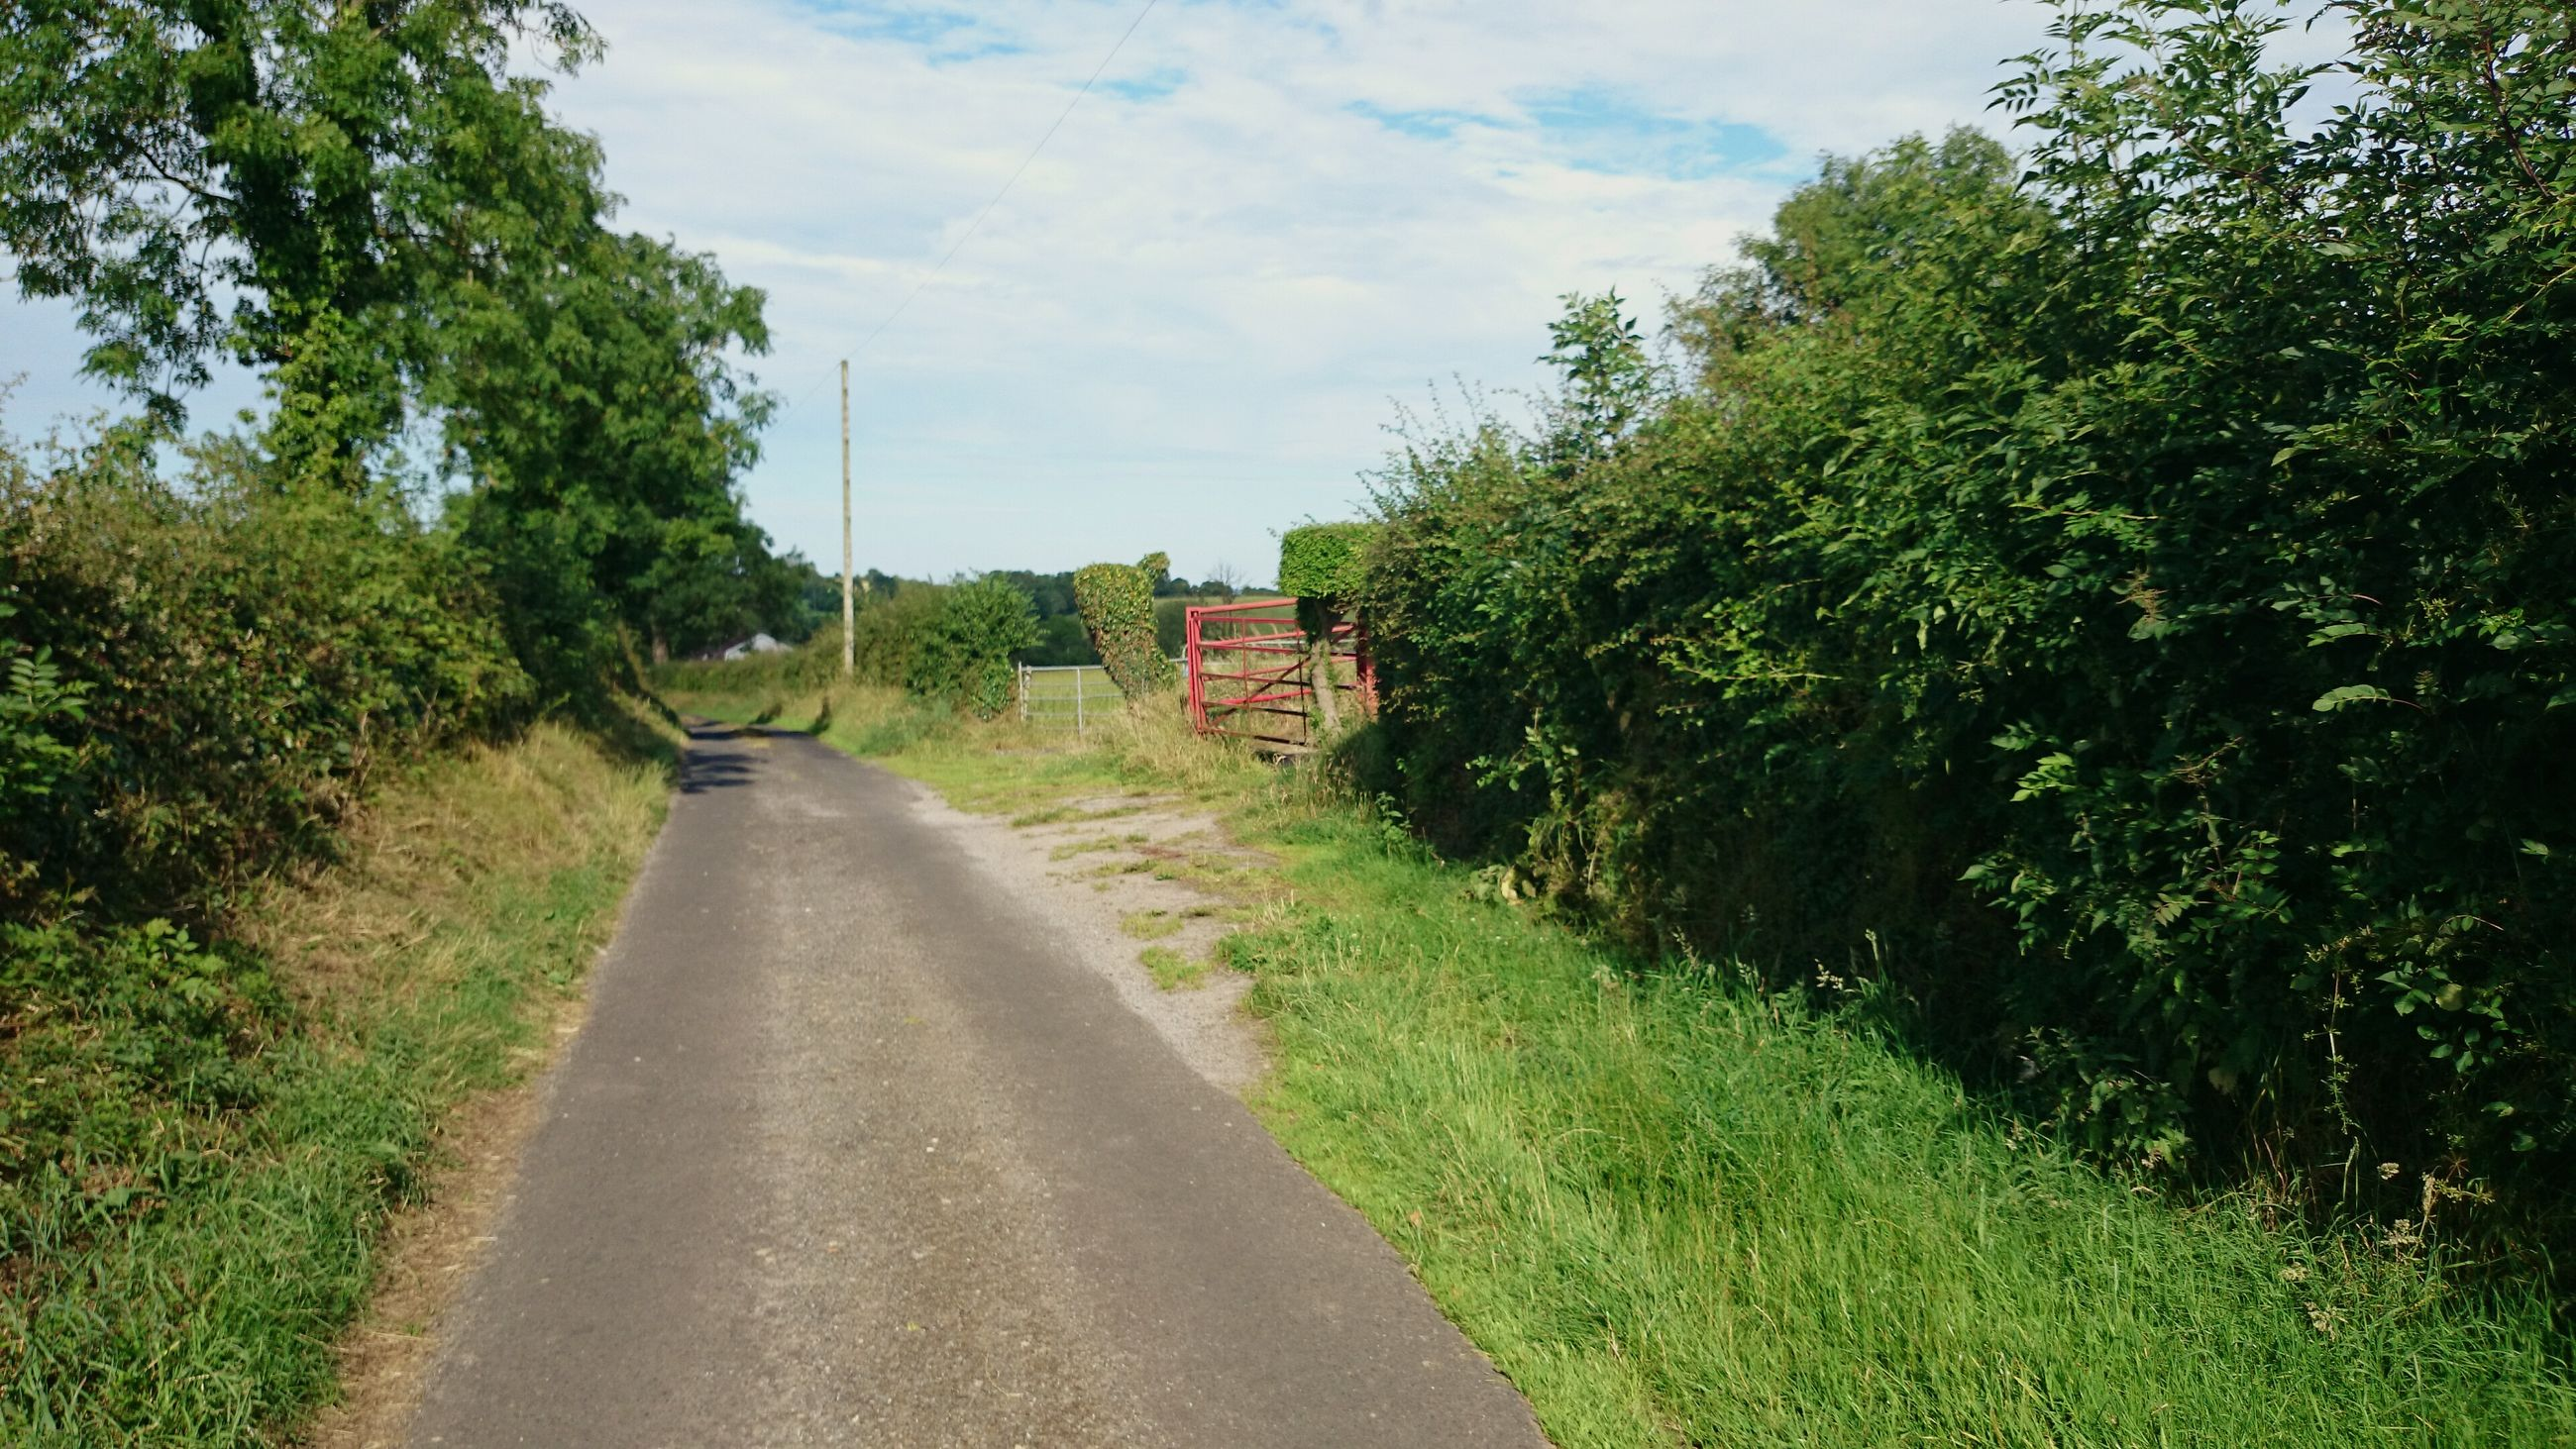 the way forward, tree, grass, diminishing perspective, sky, vanishing point, green color, growth, building exterior, footpath, built structure, architecture, dirt road, pathway, walkway, plant, road, transportation, nature, tranquility